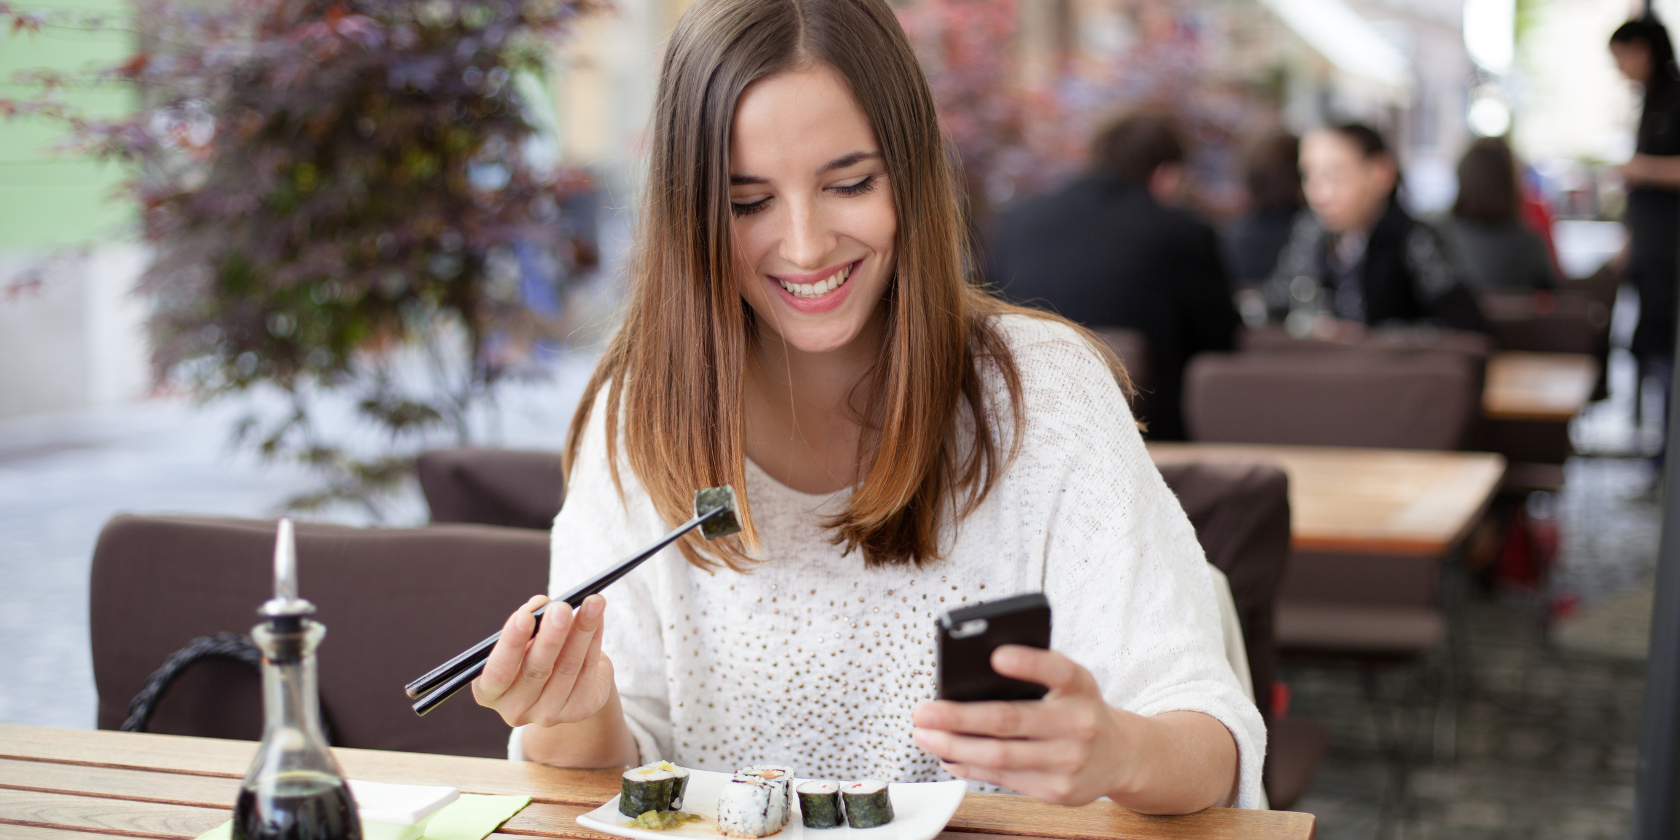 woman-chopsticks-phone